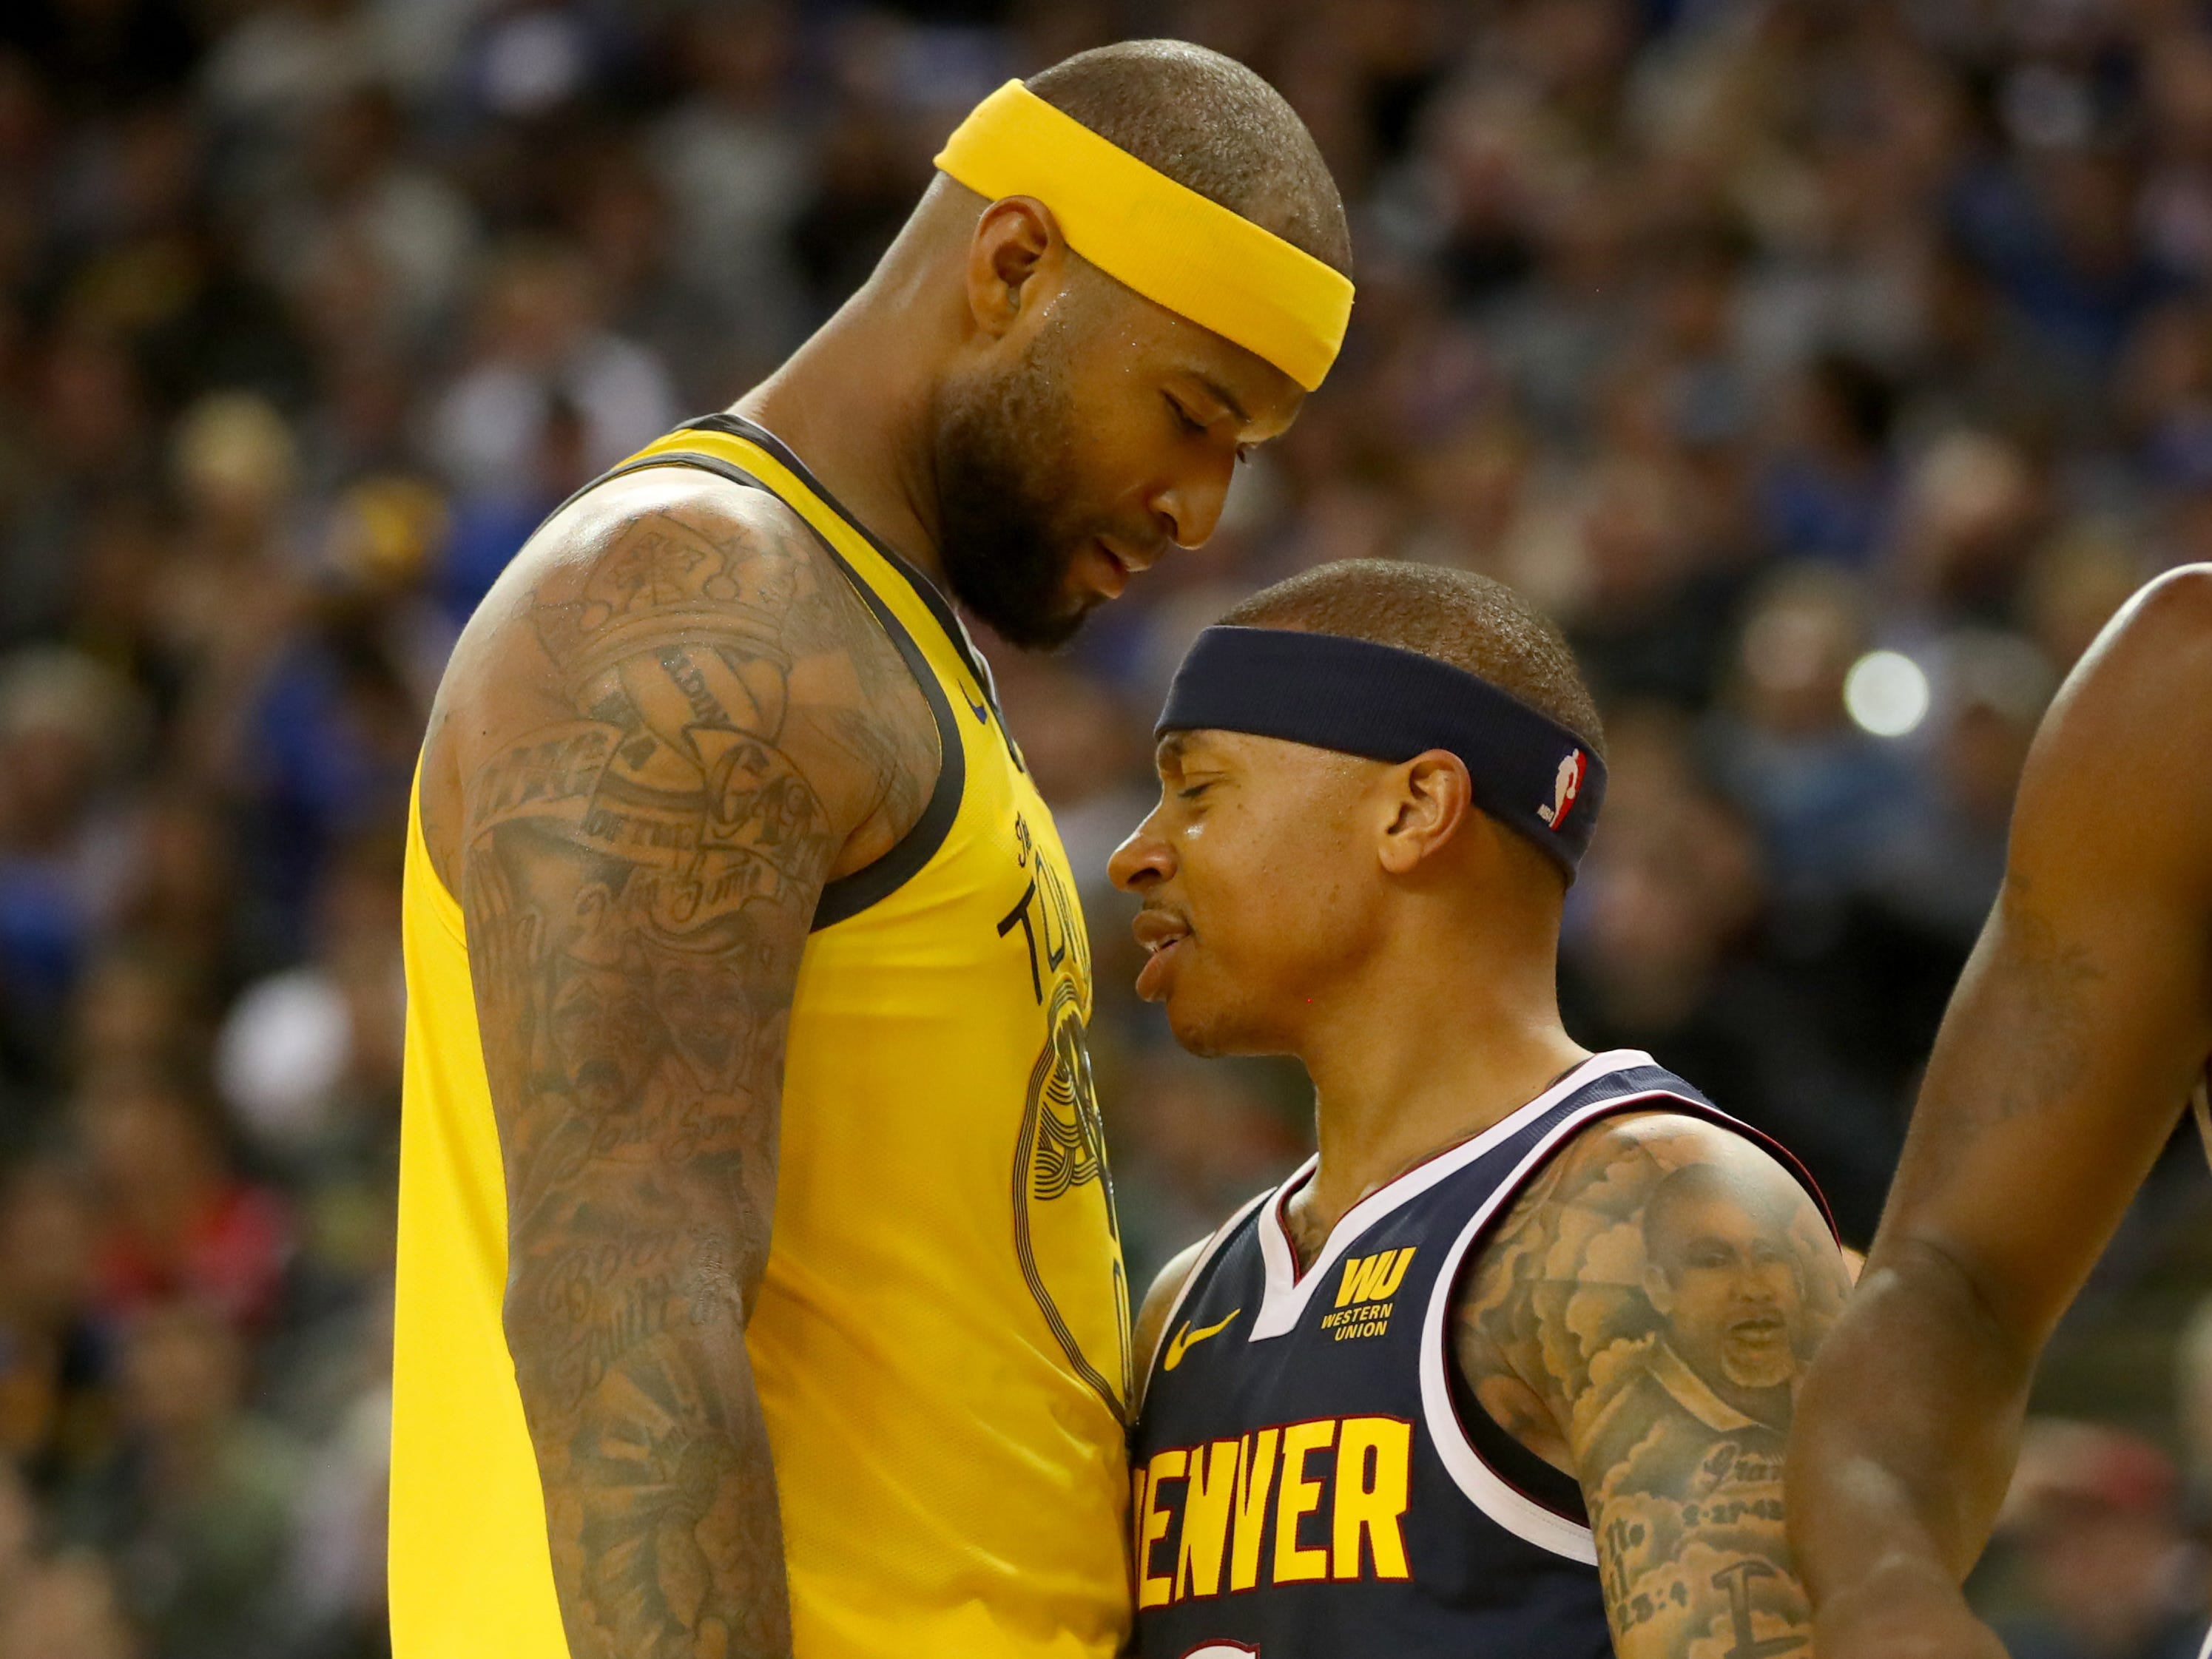 March 8: Warriors center DeMarcus Cousins (0) exchanges words with Nuggets guard Isaiah Thomas (0) during the fourth quarter at Oracle Arena in Oakland.